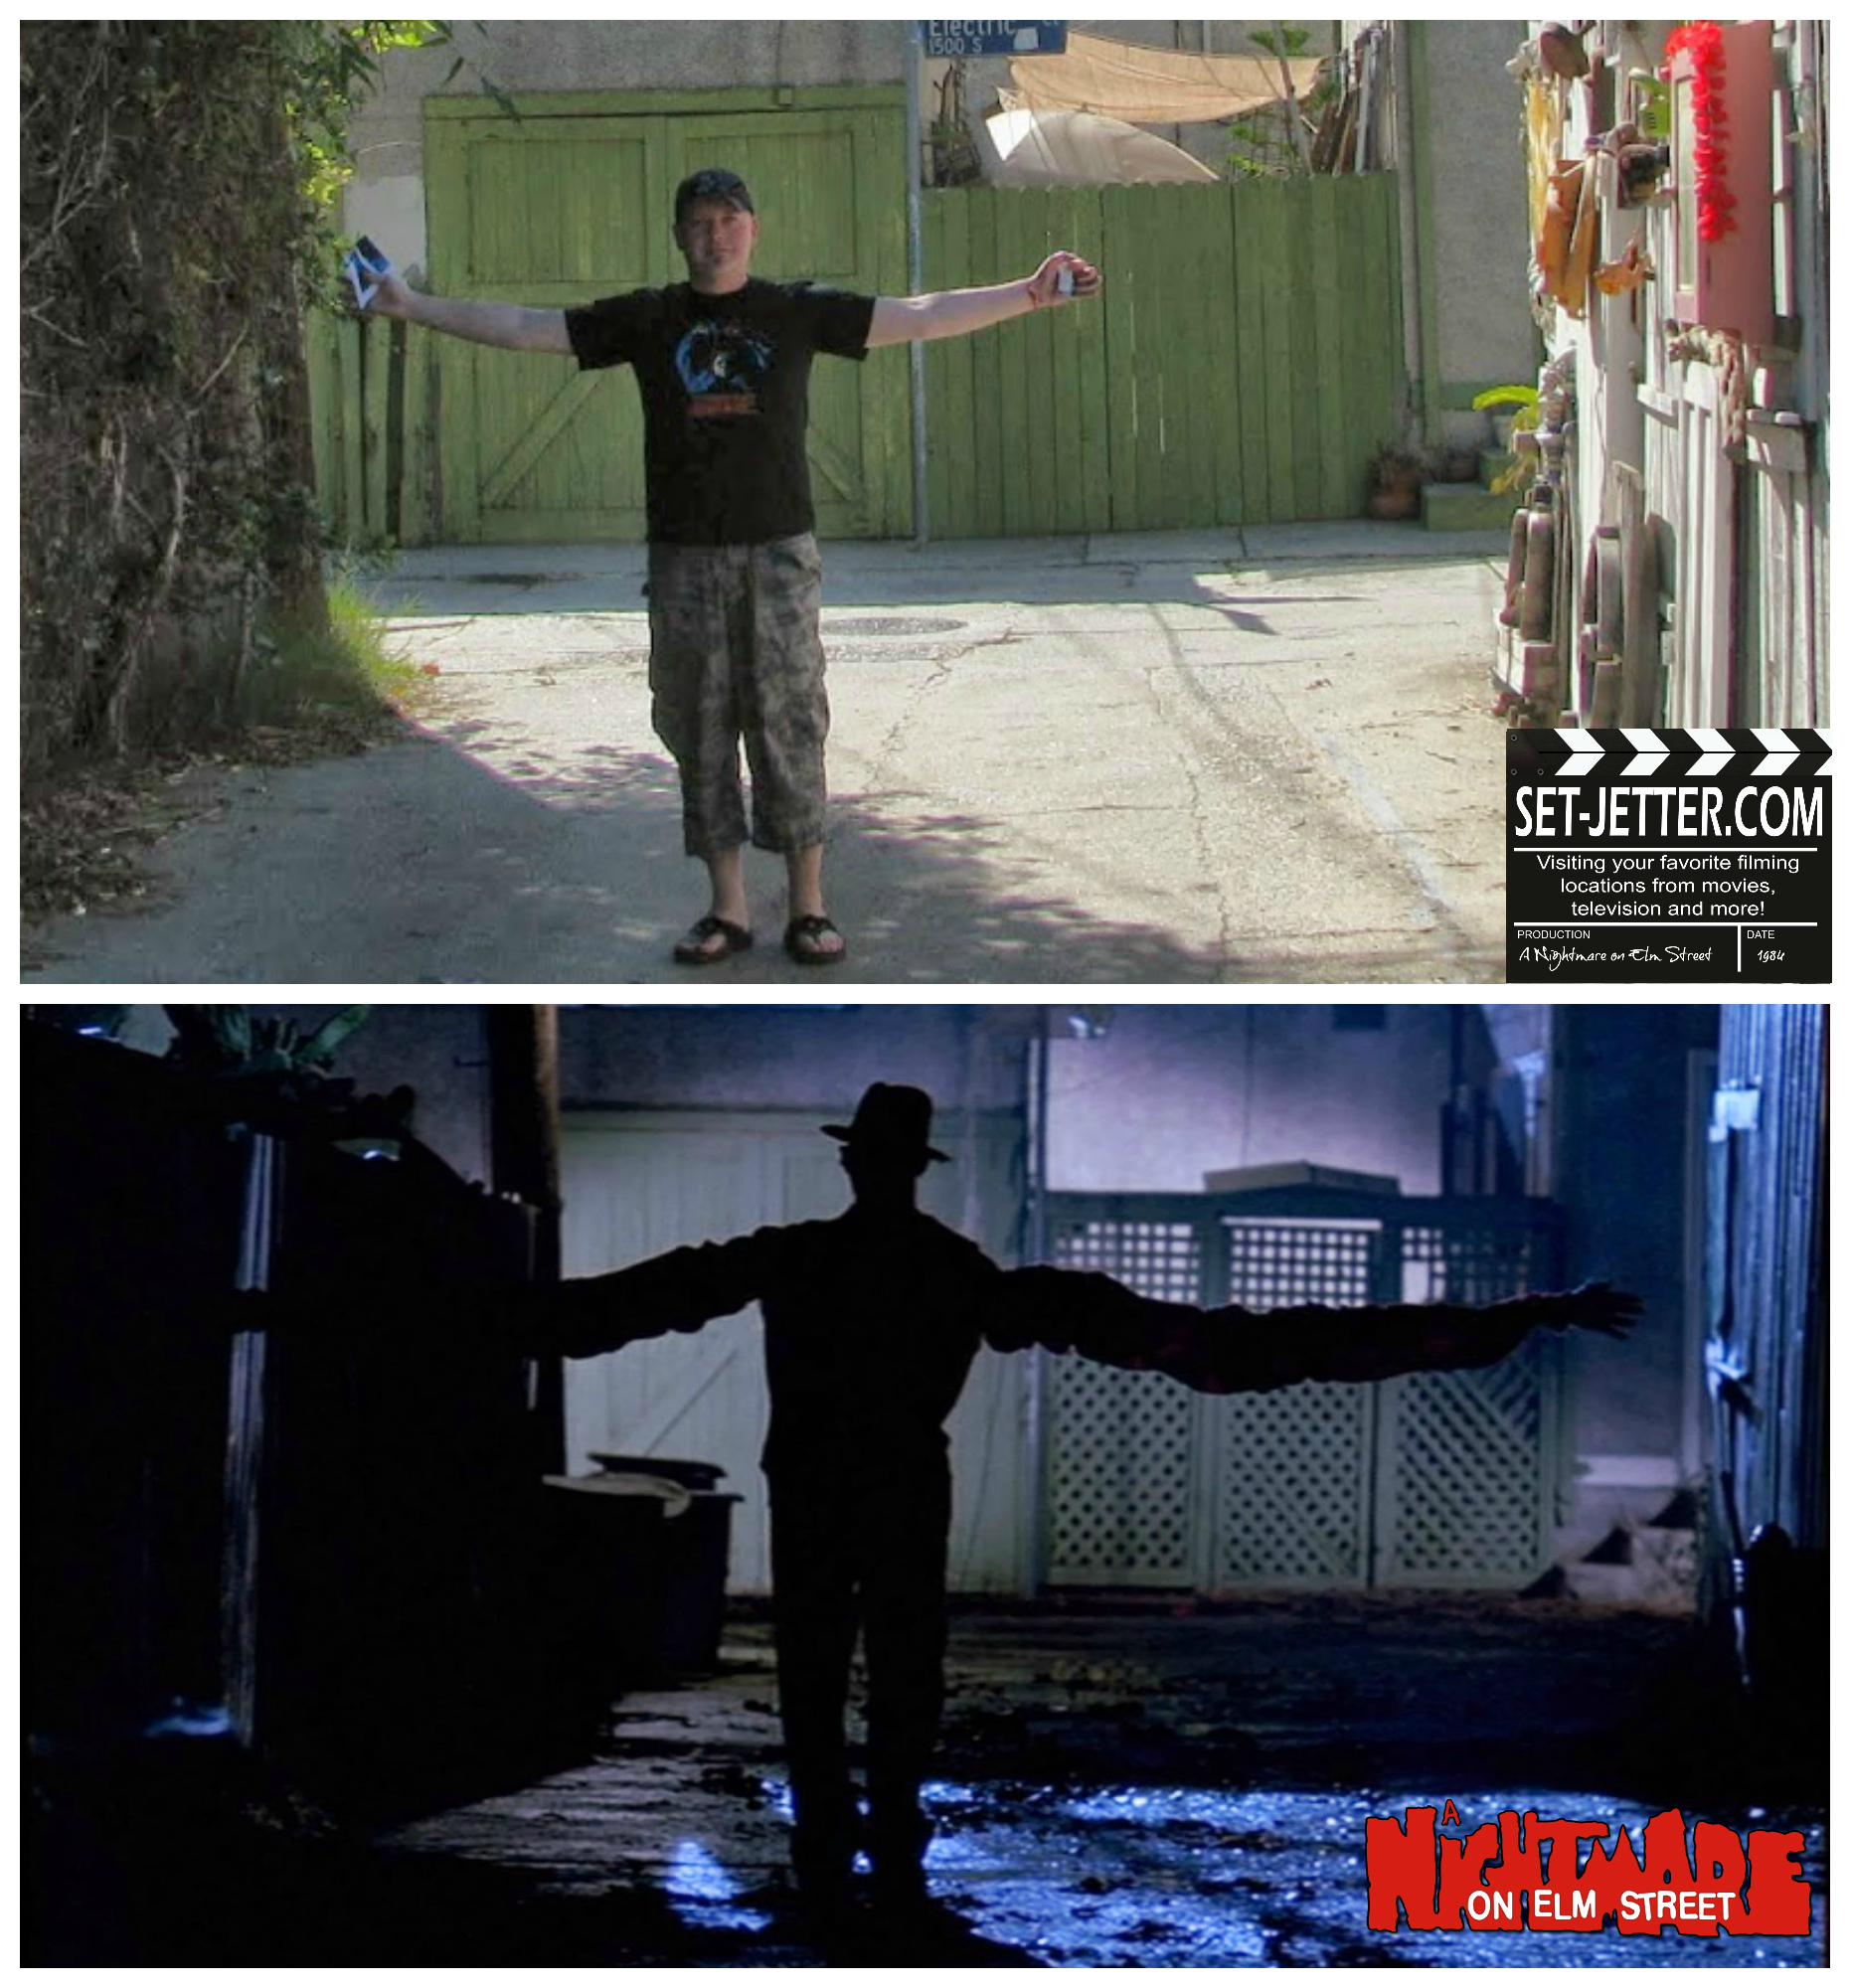 Nightmare on Elm Street comparison 12.jpg